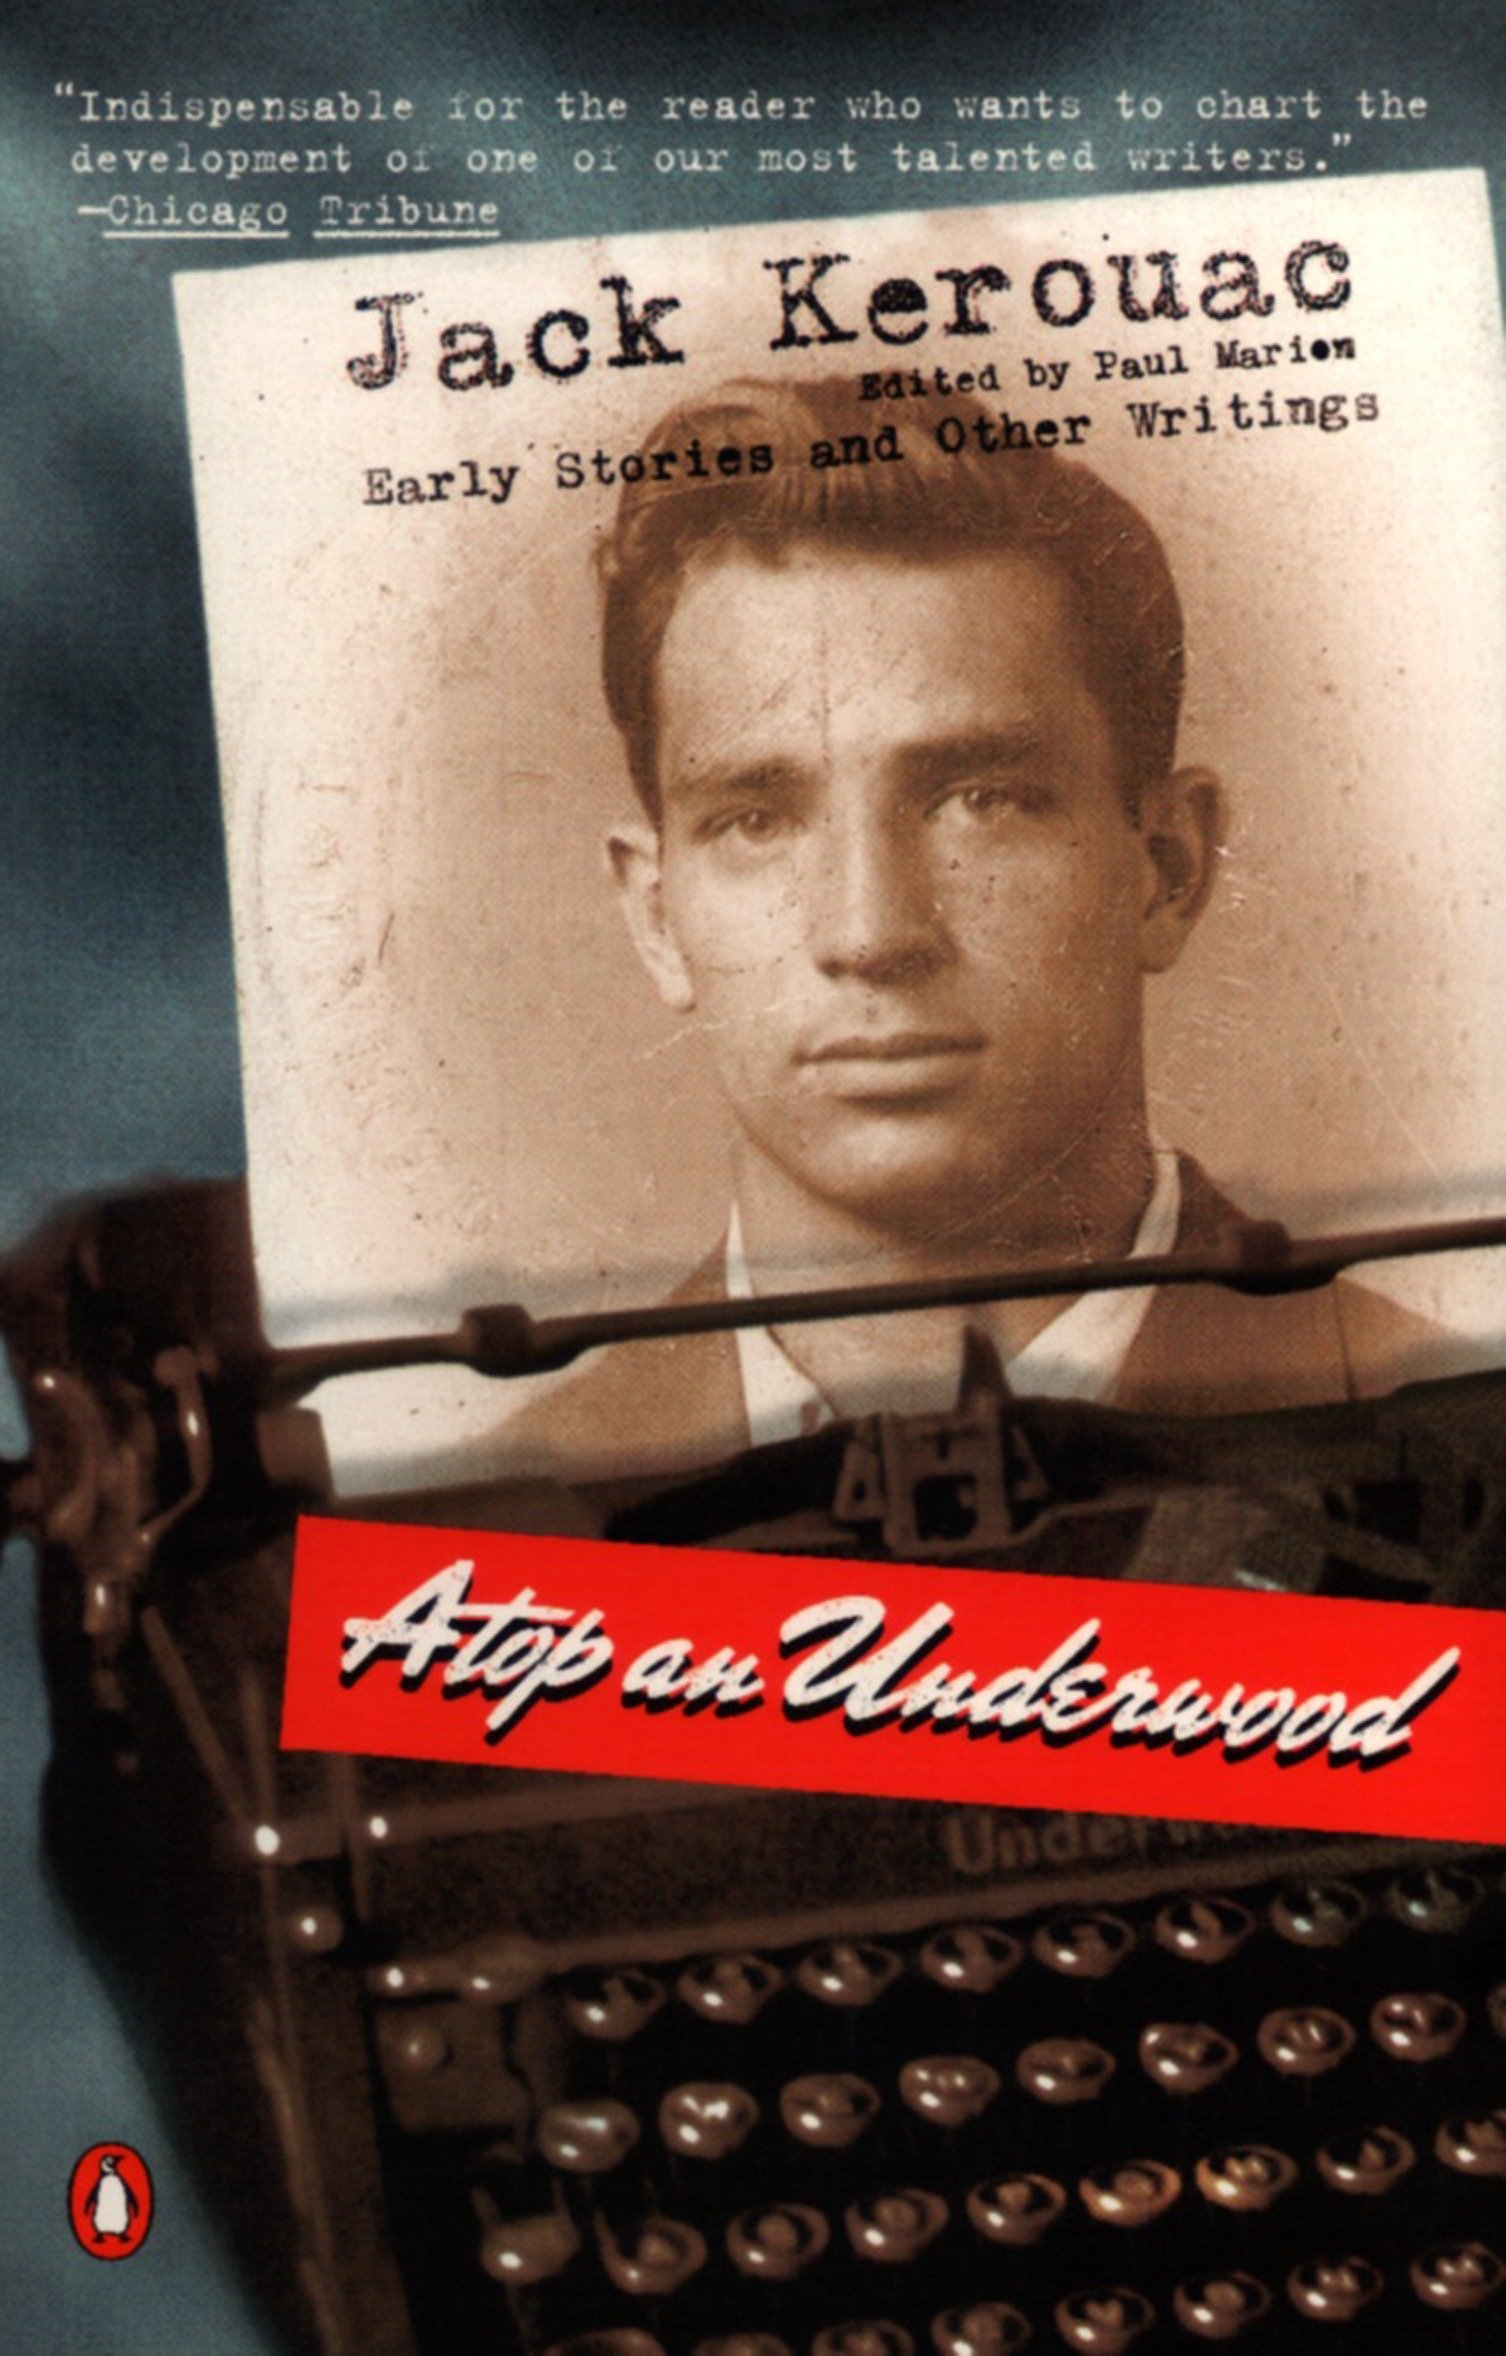 Read Online Atop an Underwood: Early Stories and Other Writings ebook